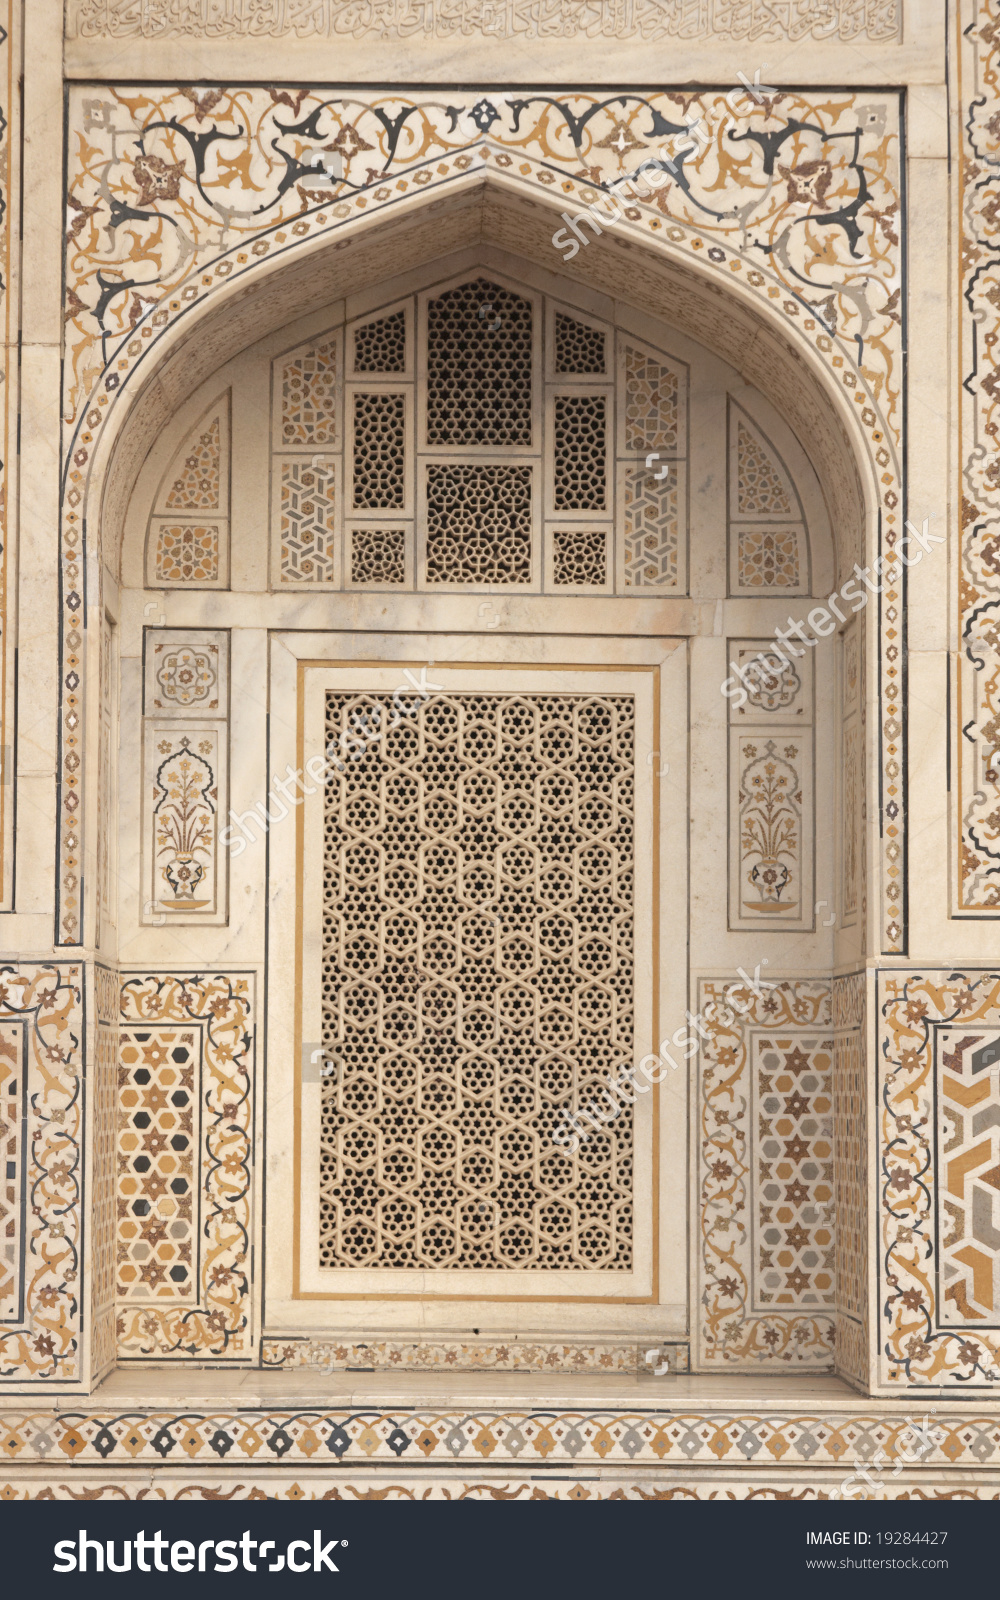 Window Arch Ornate White Marble Mughal Stock Photo 19284427.